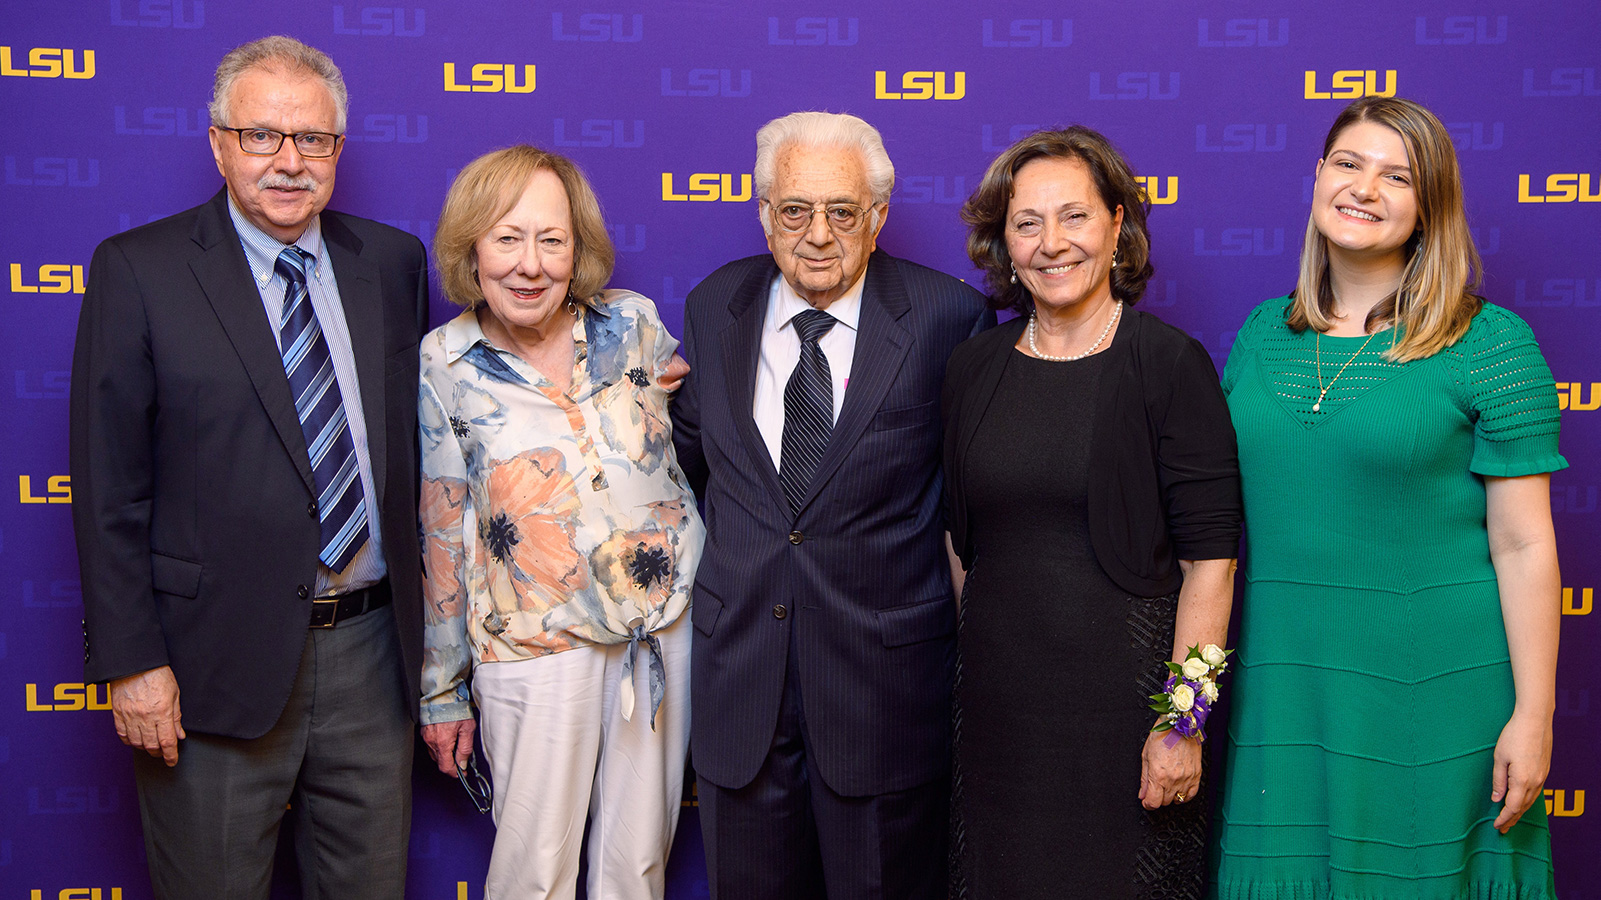 Pamukcu posing with a group of people in front of an LSU step-and-repeat